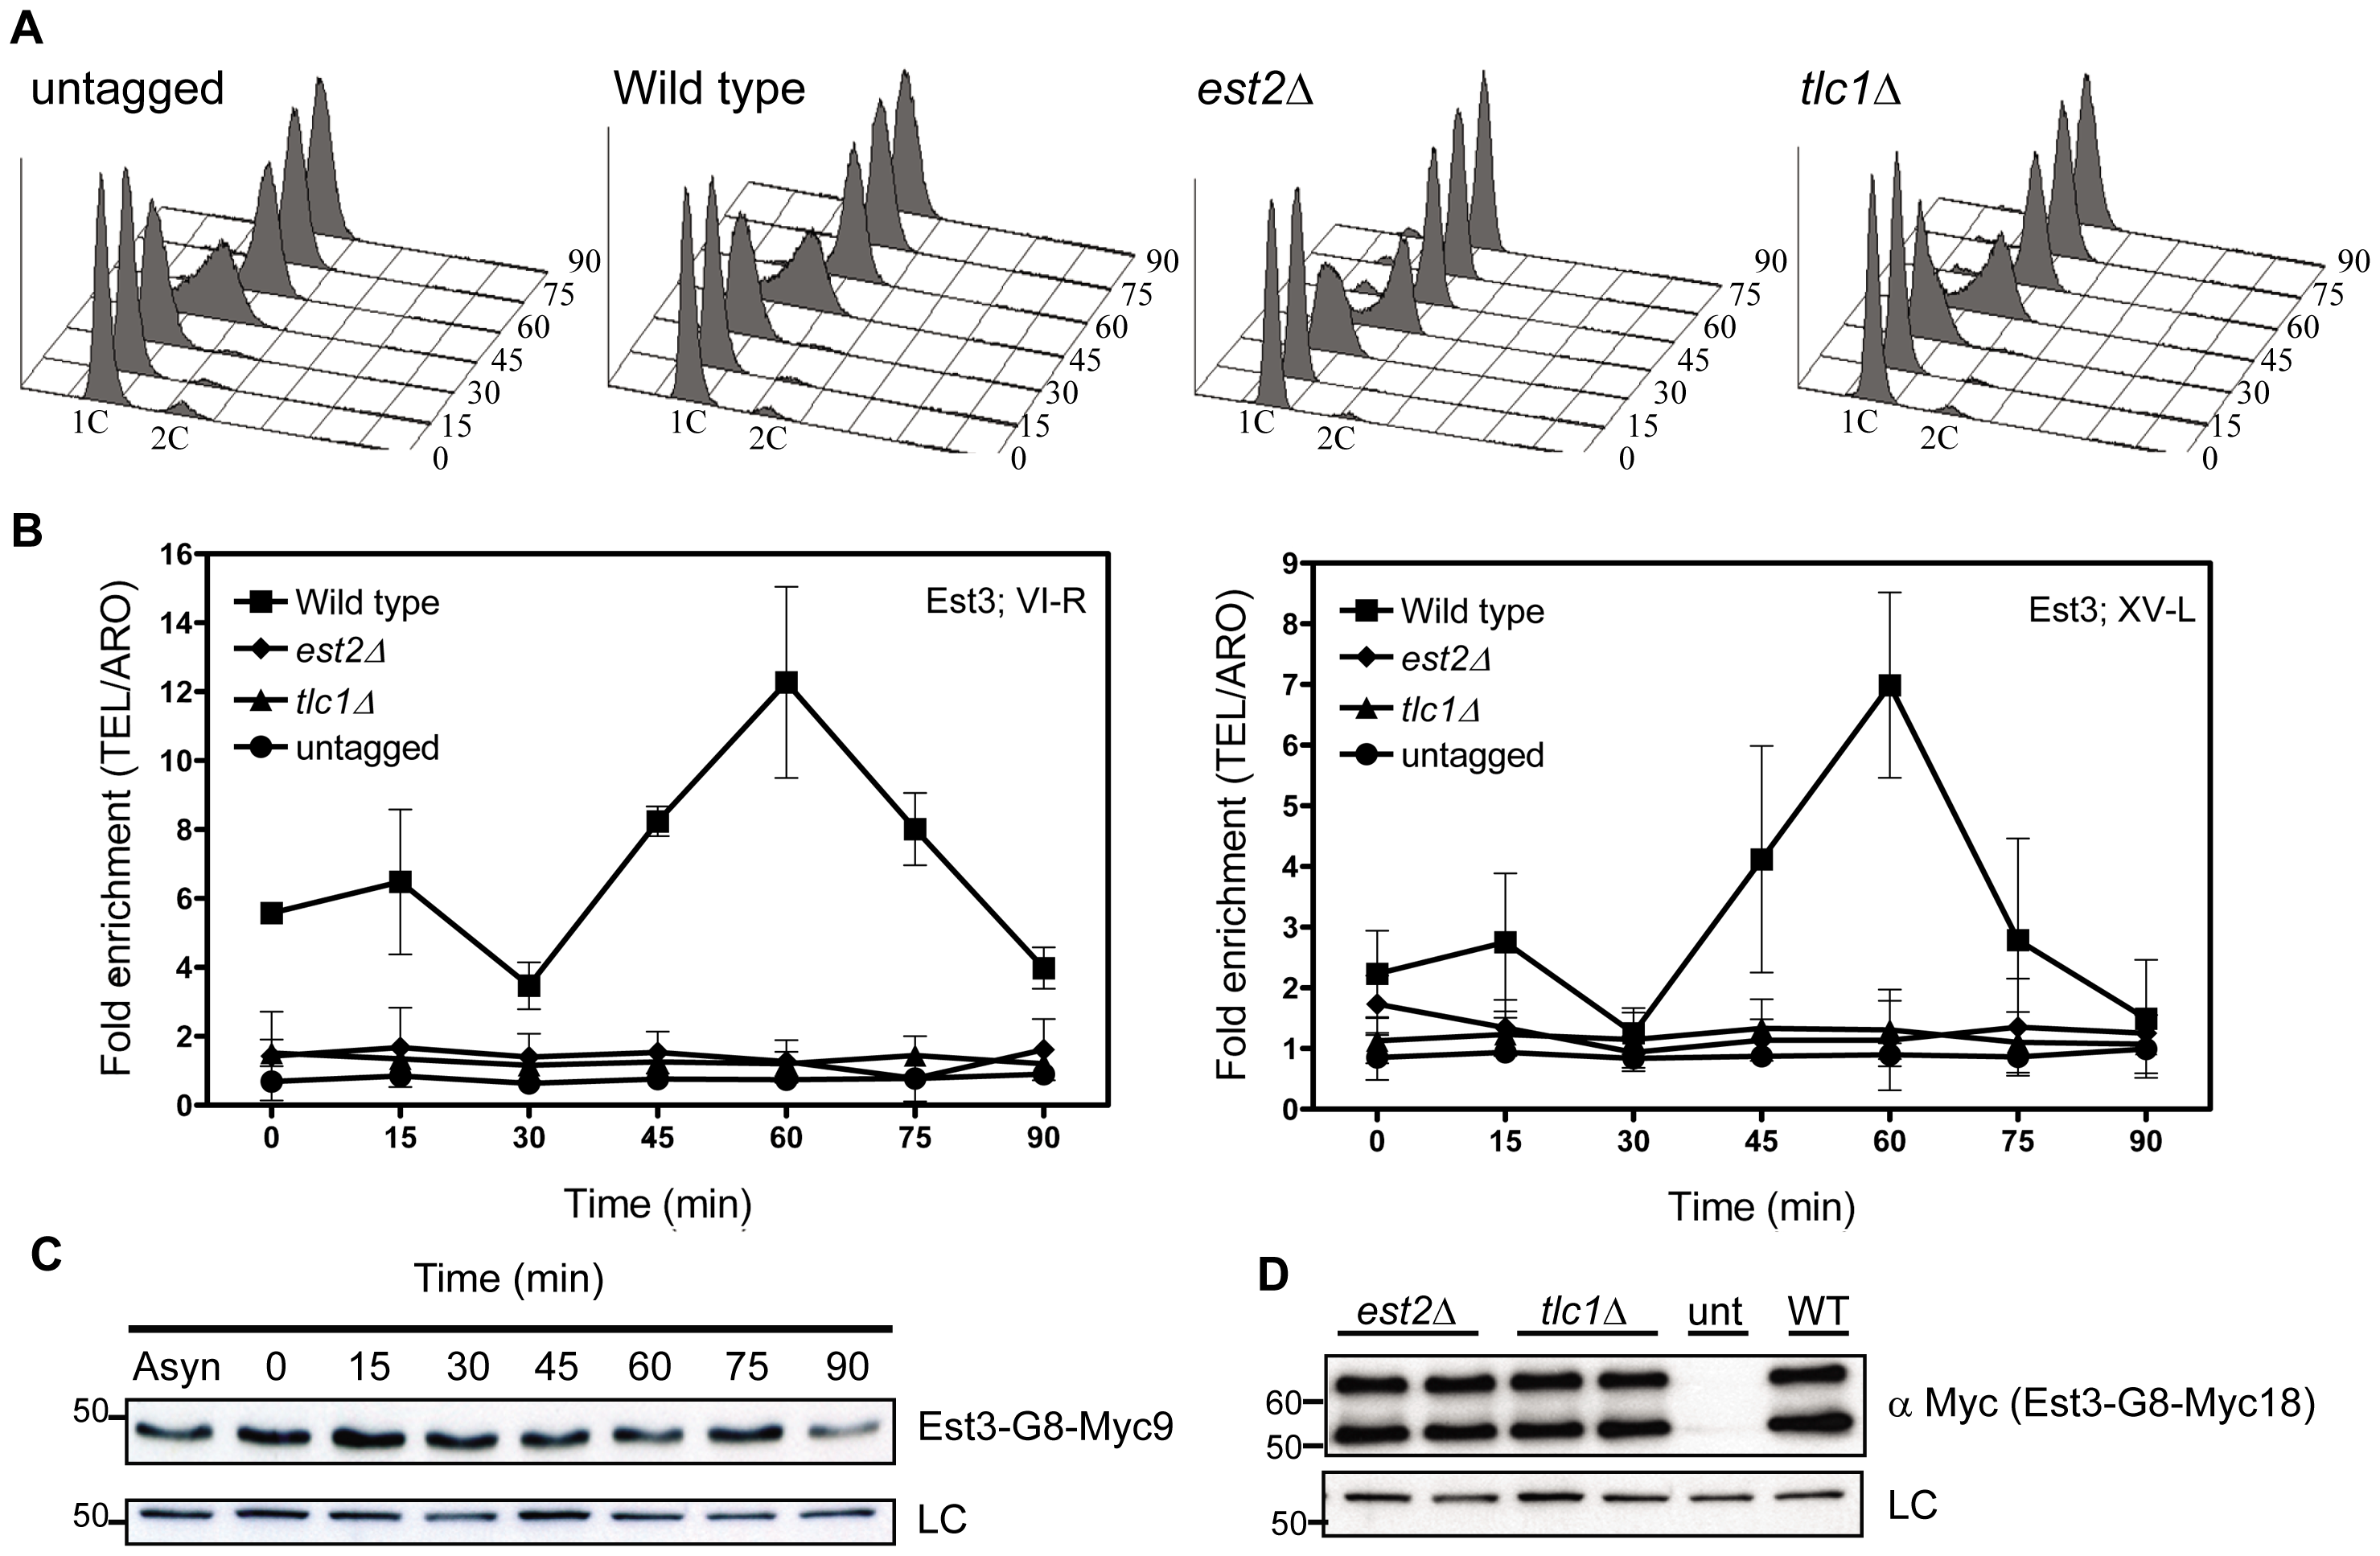 Est3 telomere binding is biphasic but highest in late S/G2 phase.